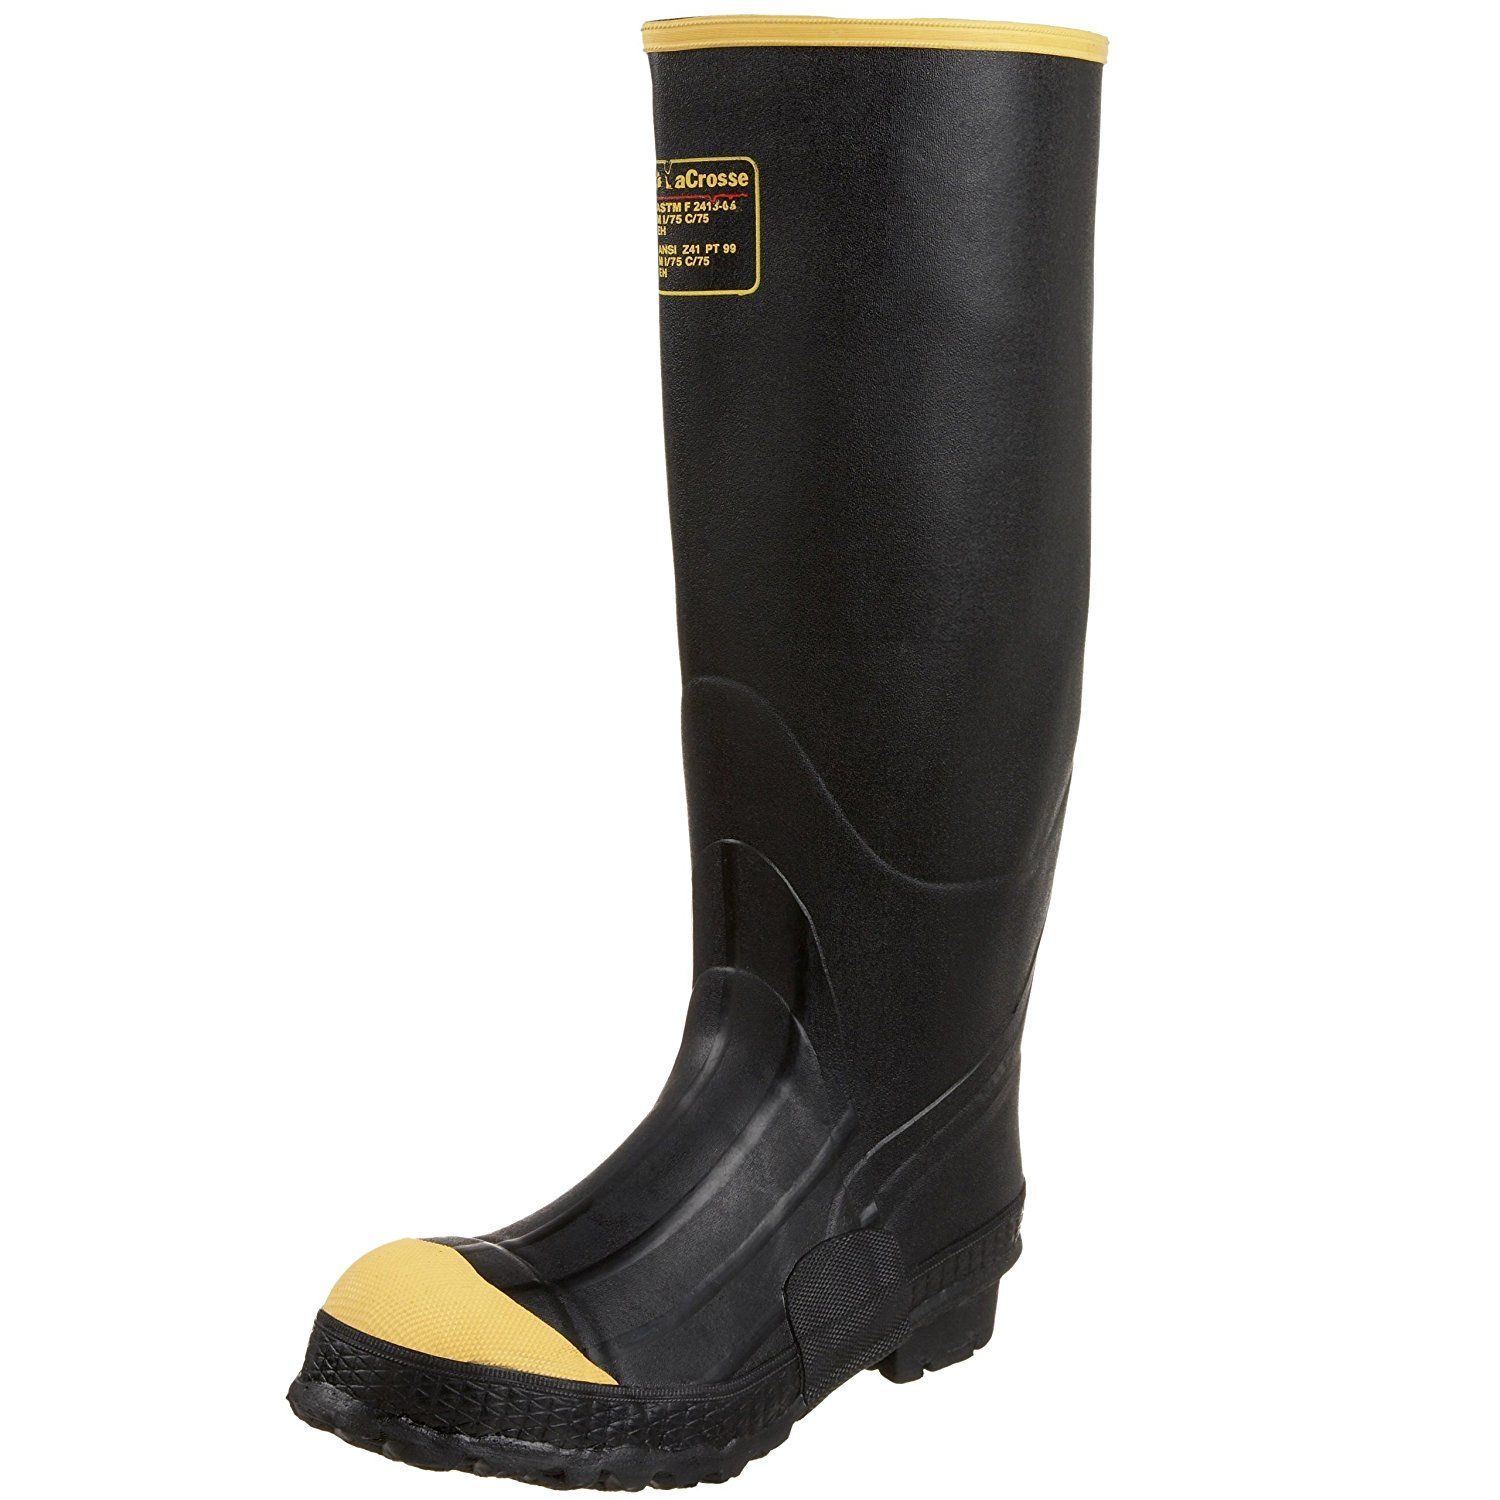 lacrosse knee high boots